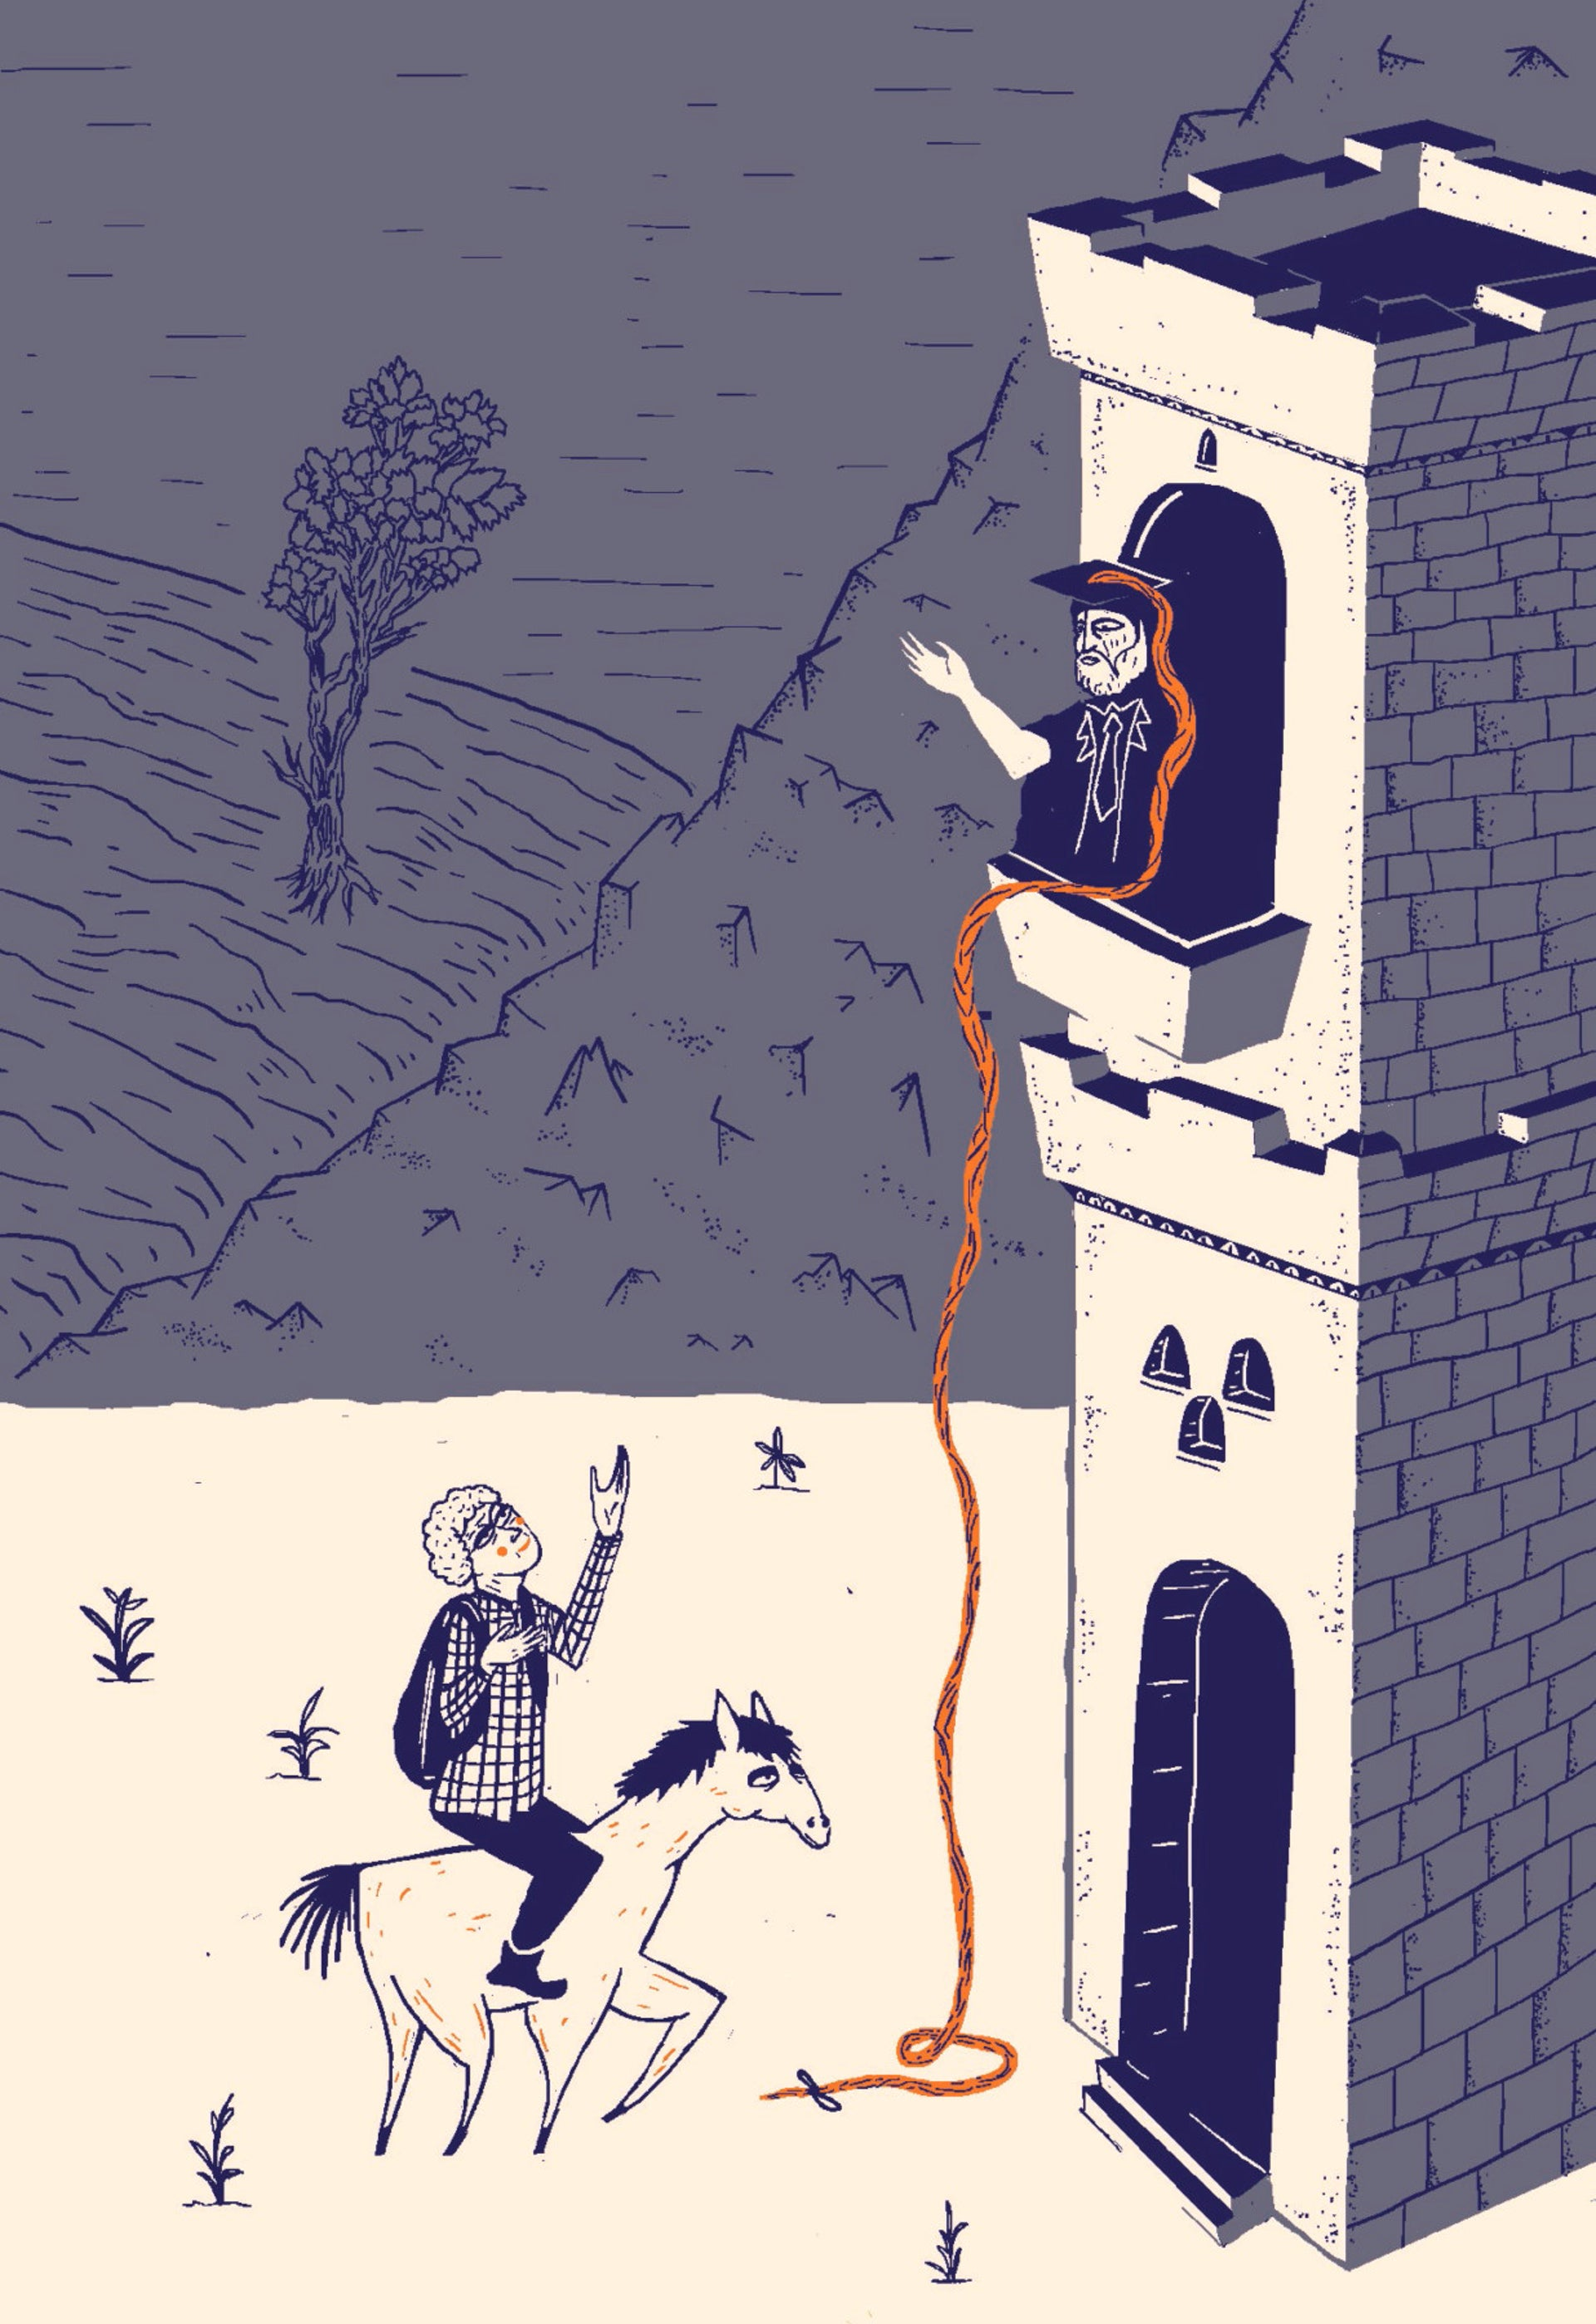 An illustration showing an old man in a cap and gown standing in a tower, throwing down the cap's tassel (Rapunzel-style) to a student straddling a horse down below.